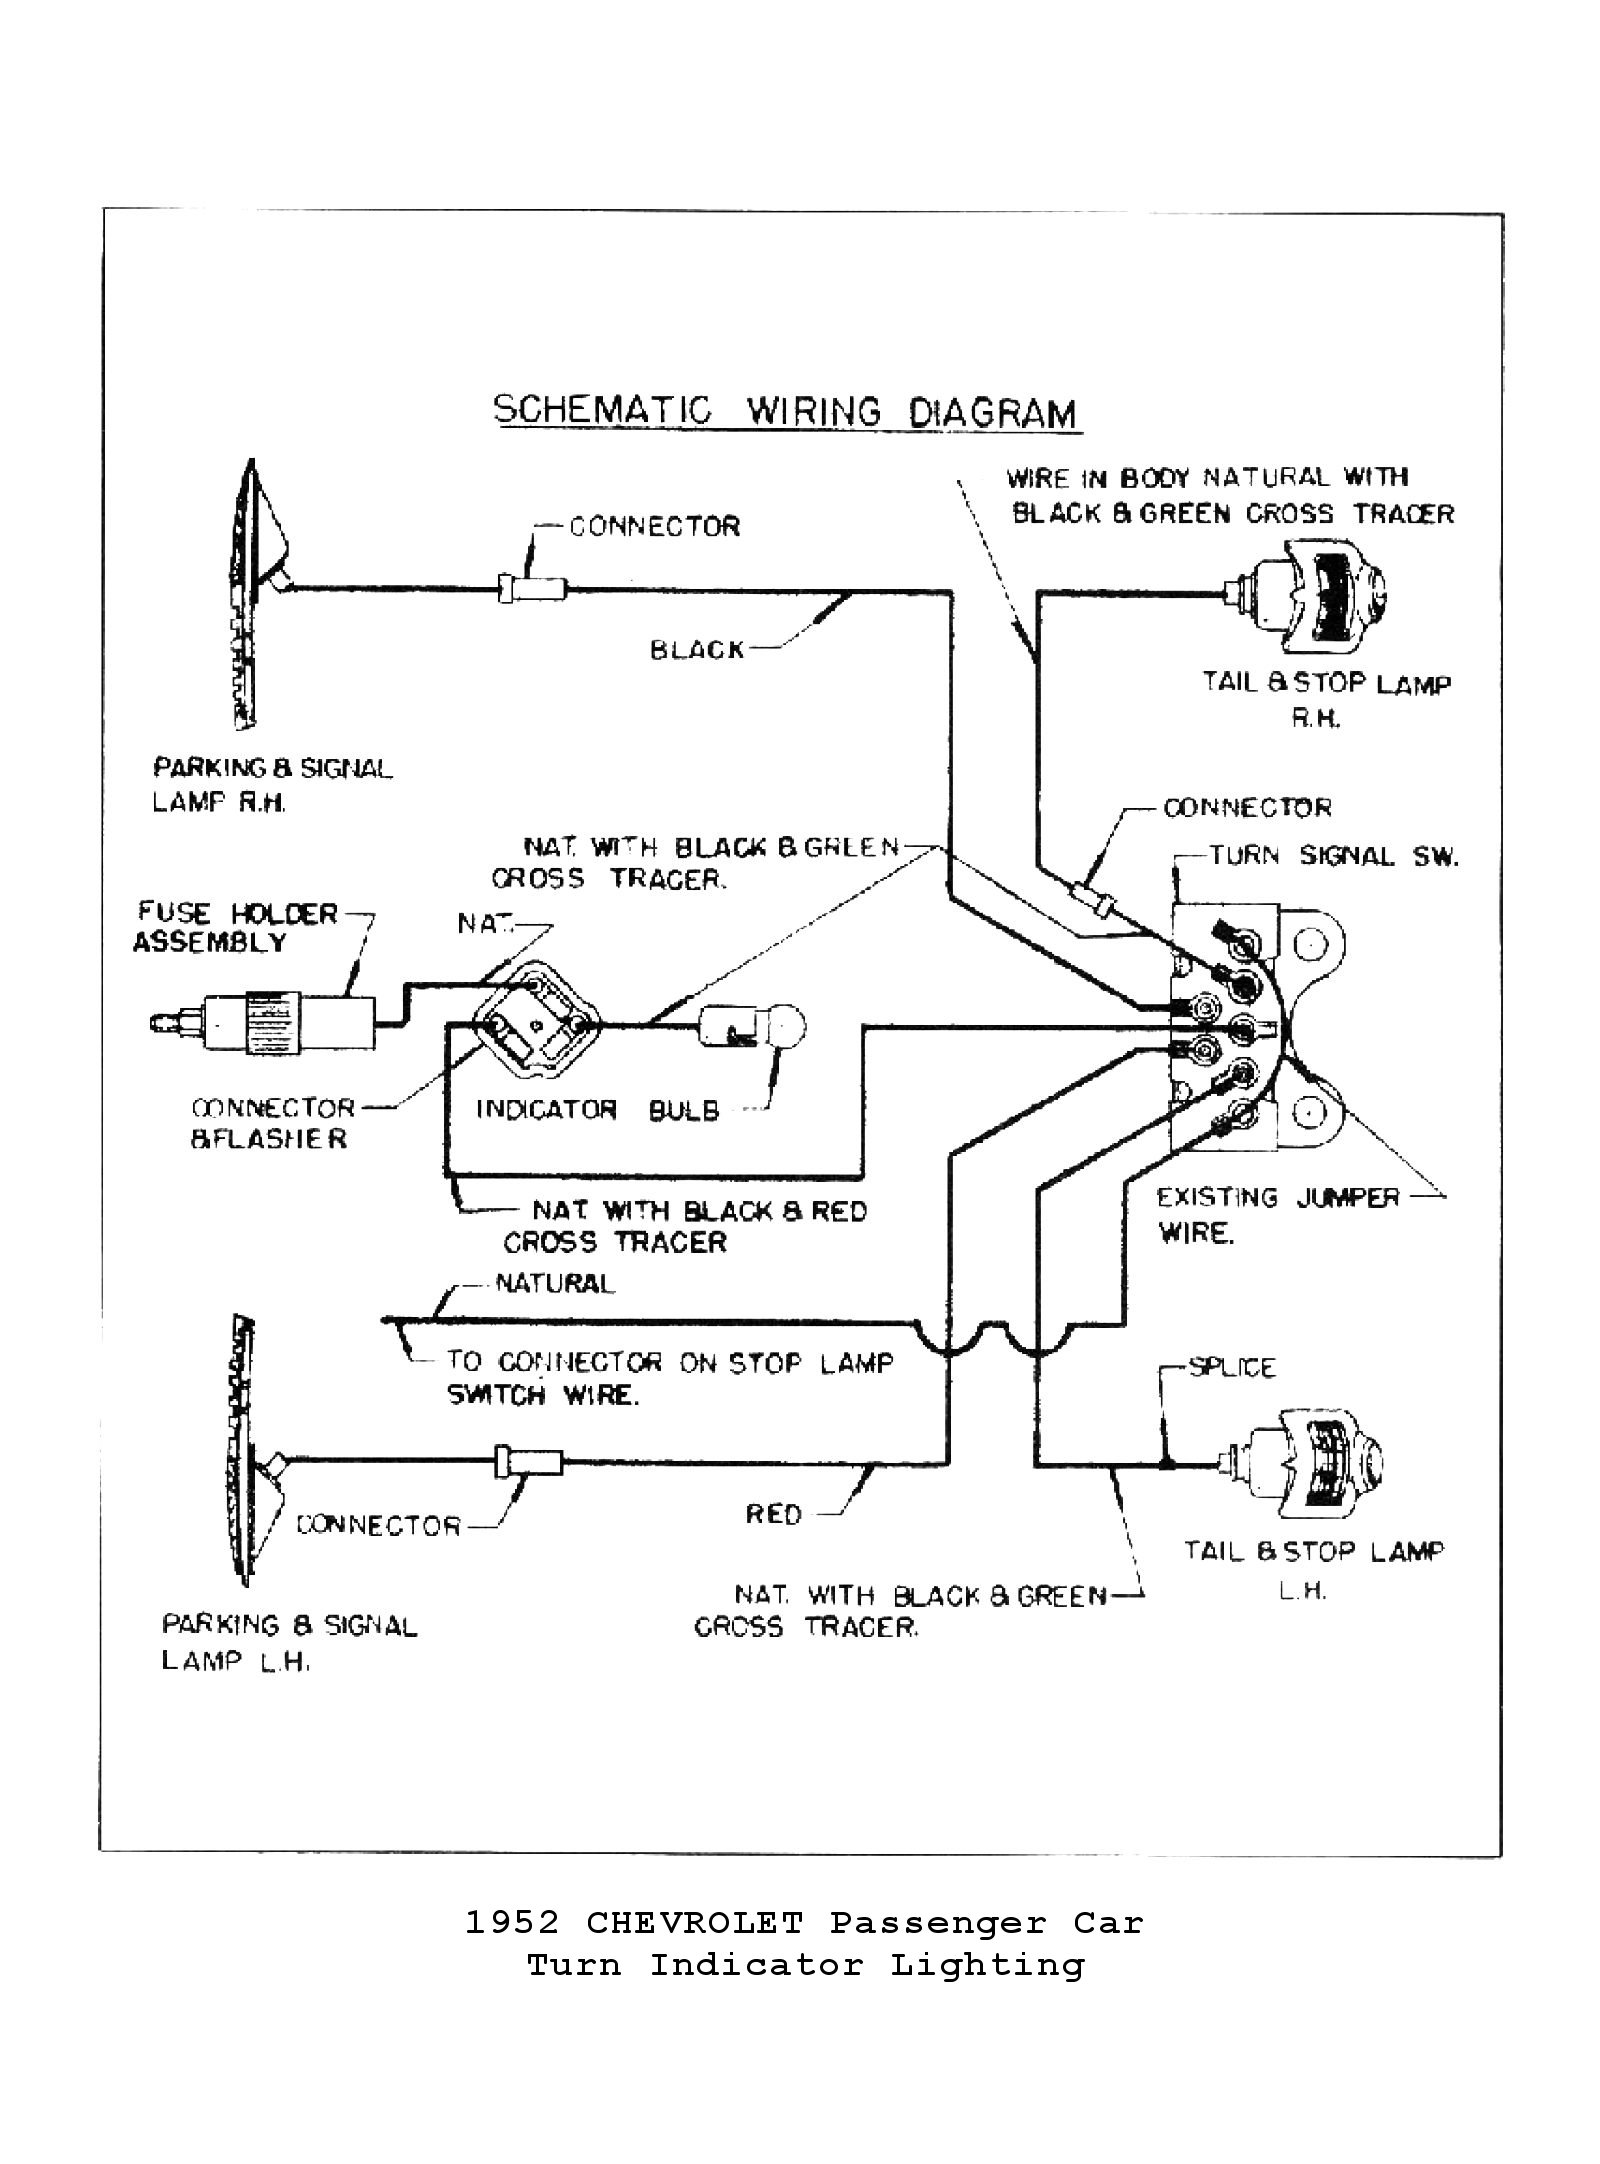 1960 Chevy Pickup Wiring Diagram Library C10 1952 Detailed Schematics Rh Antonartgallery Com Pu 1954